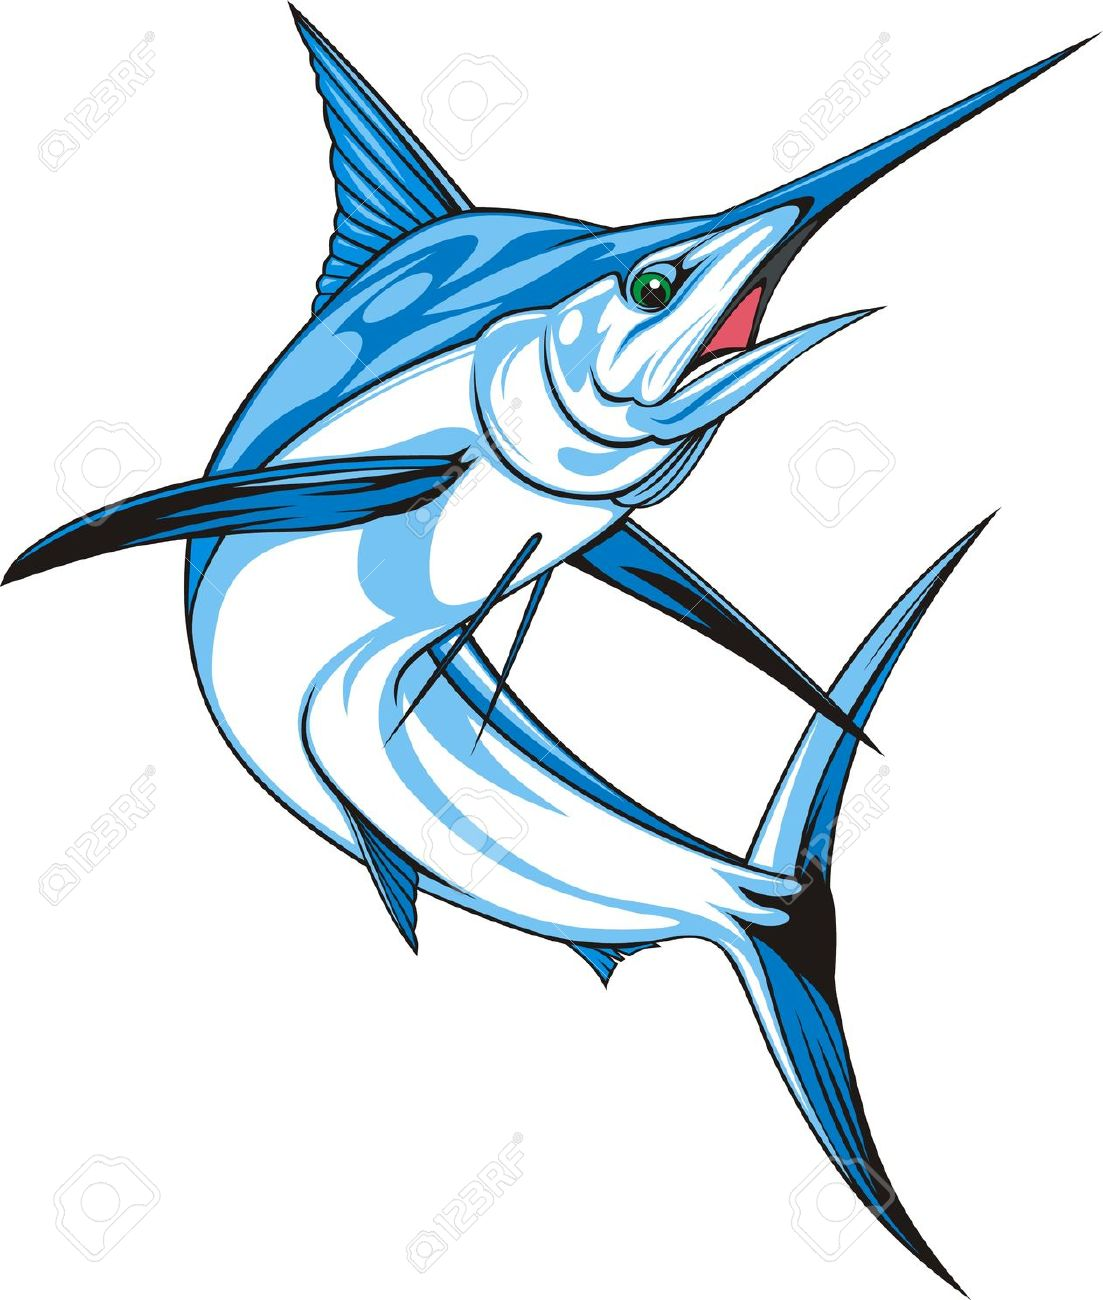 Sailfish clipart.